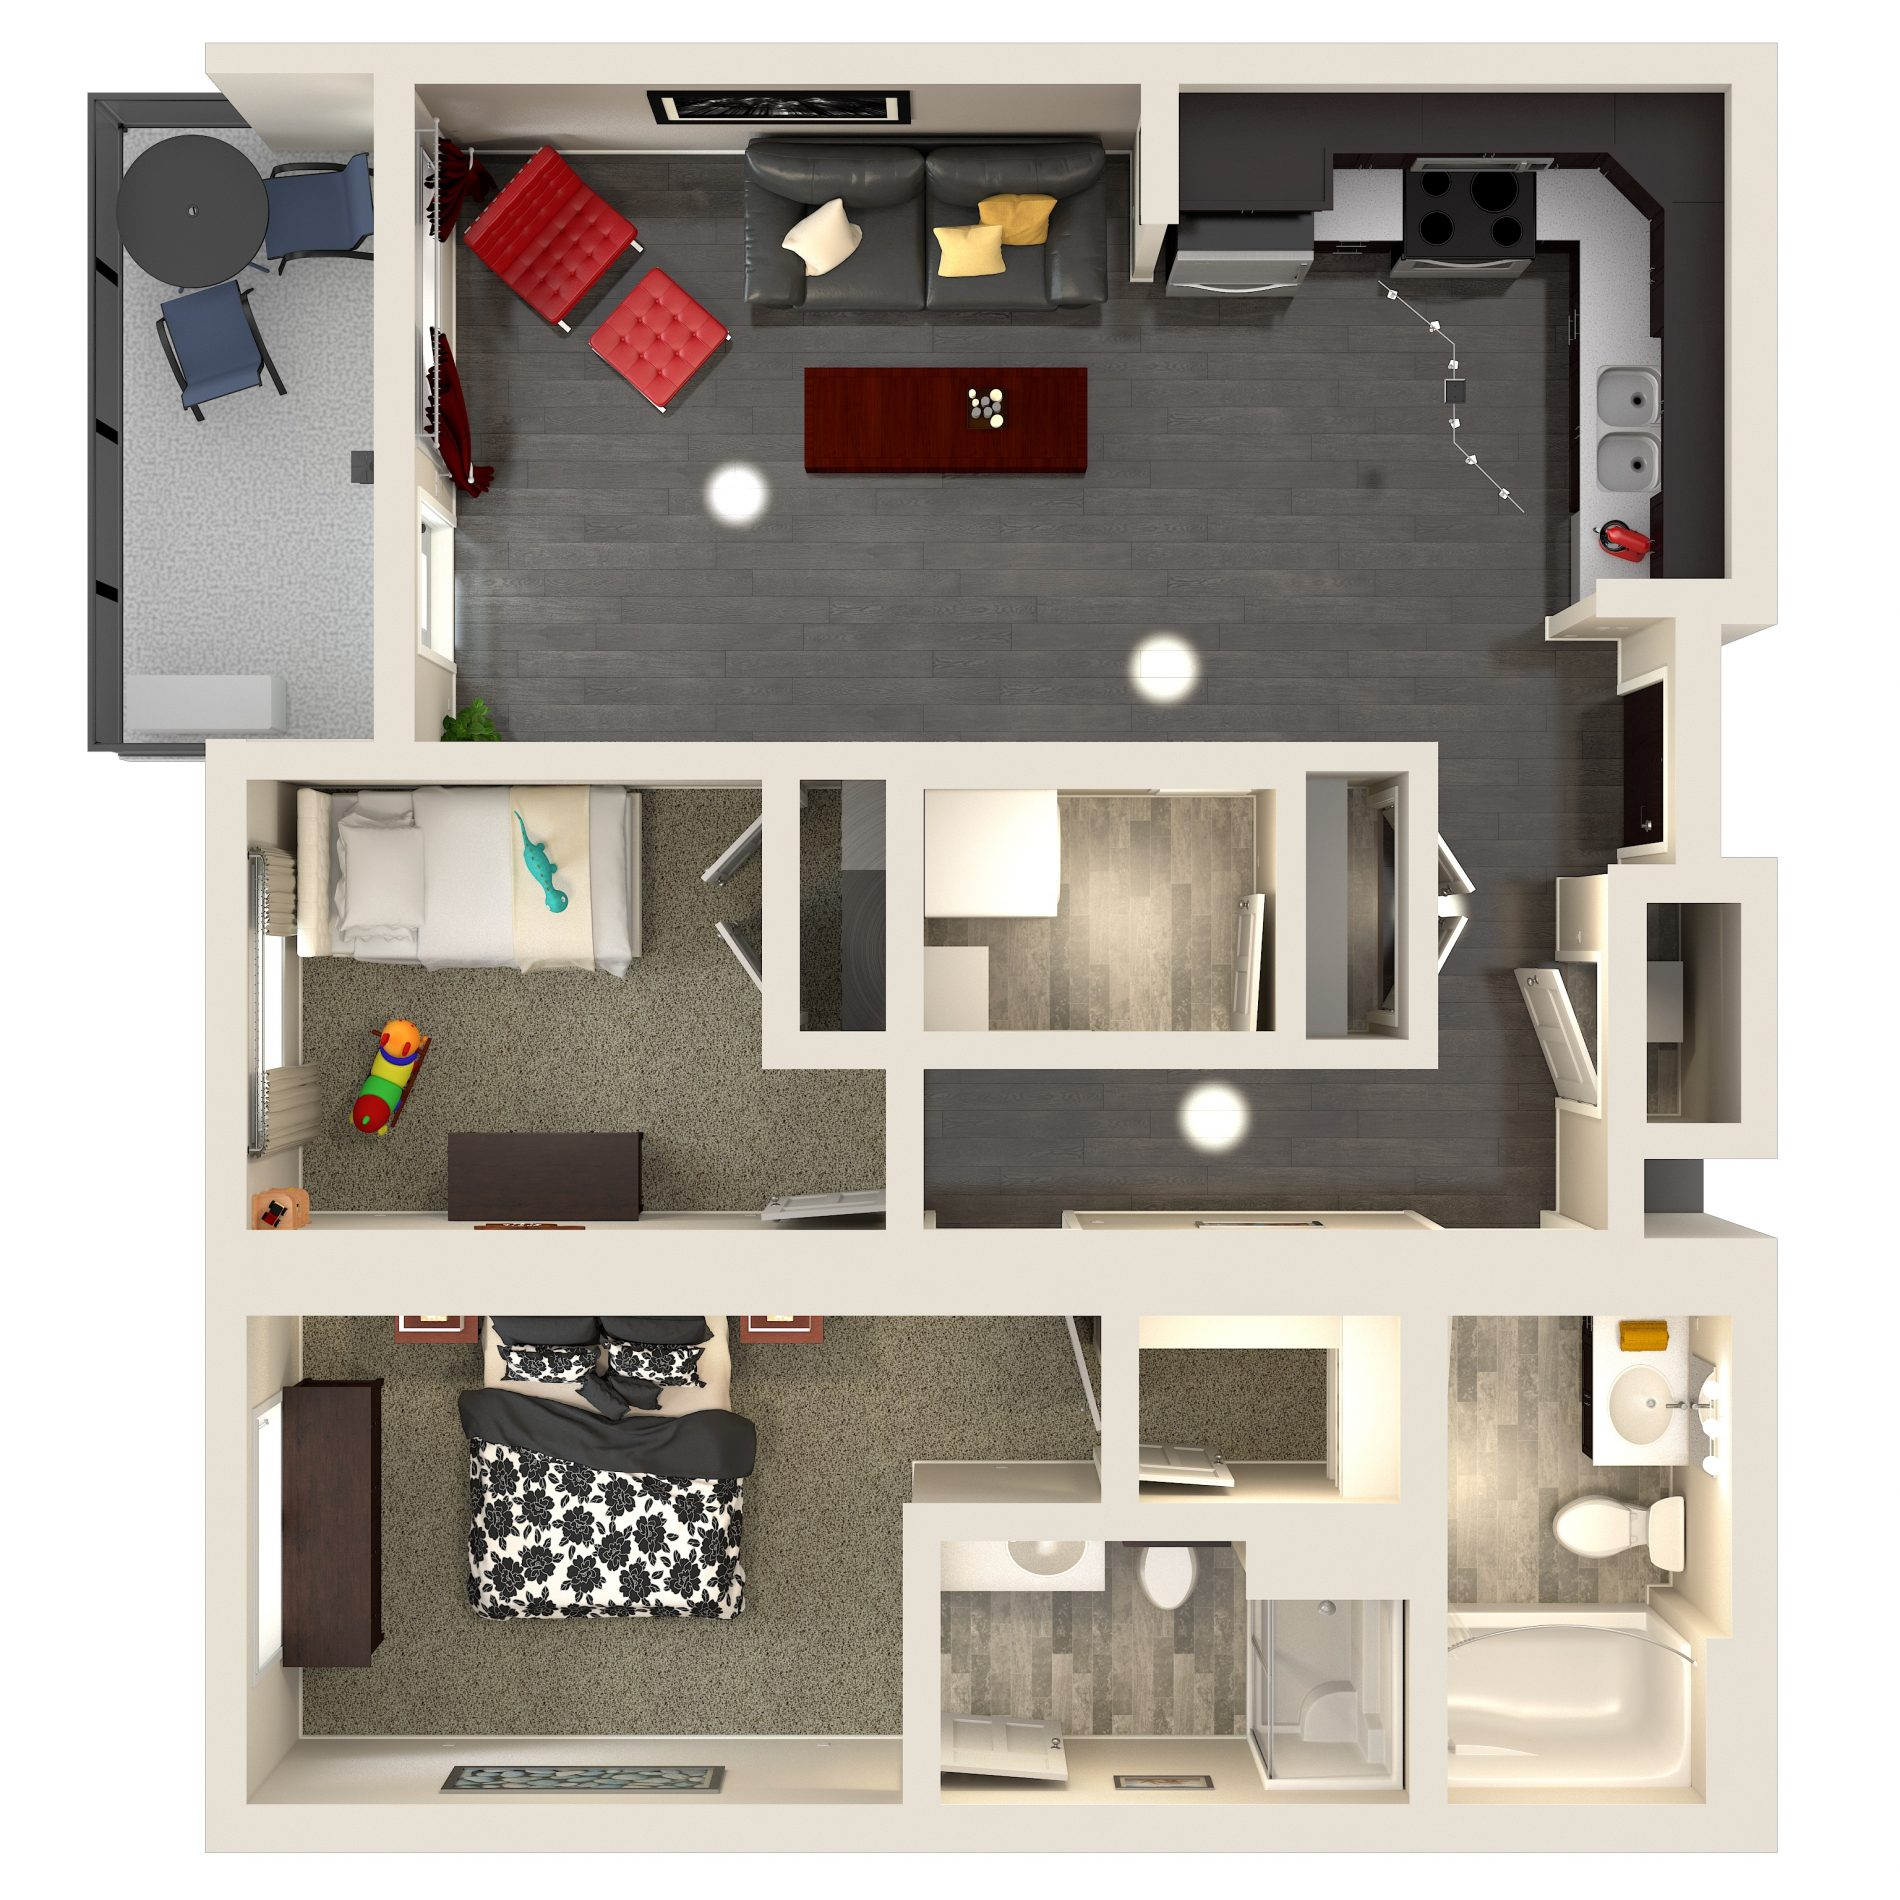 Urban Flats 2 Bedroom Condo Floor Plan